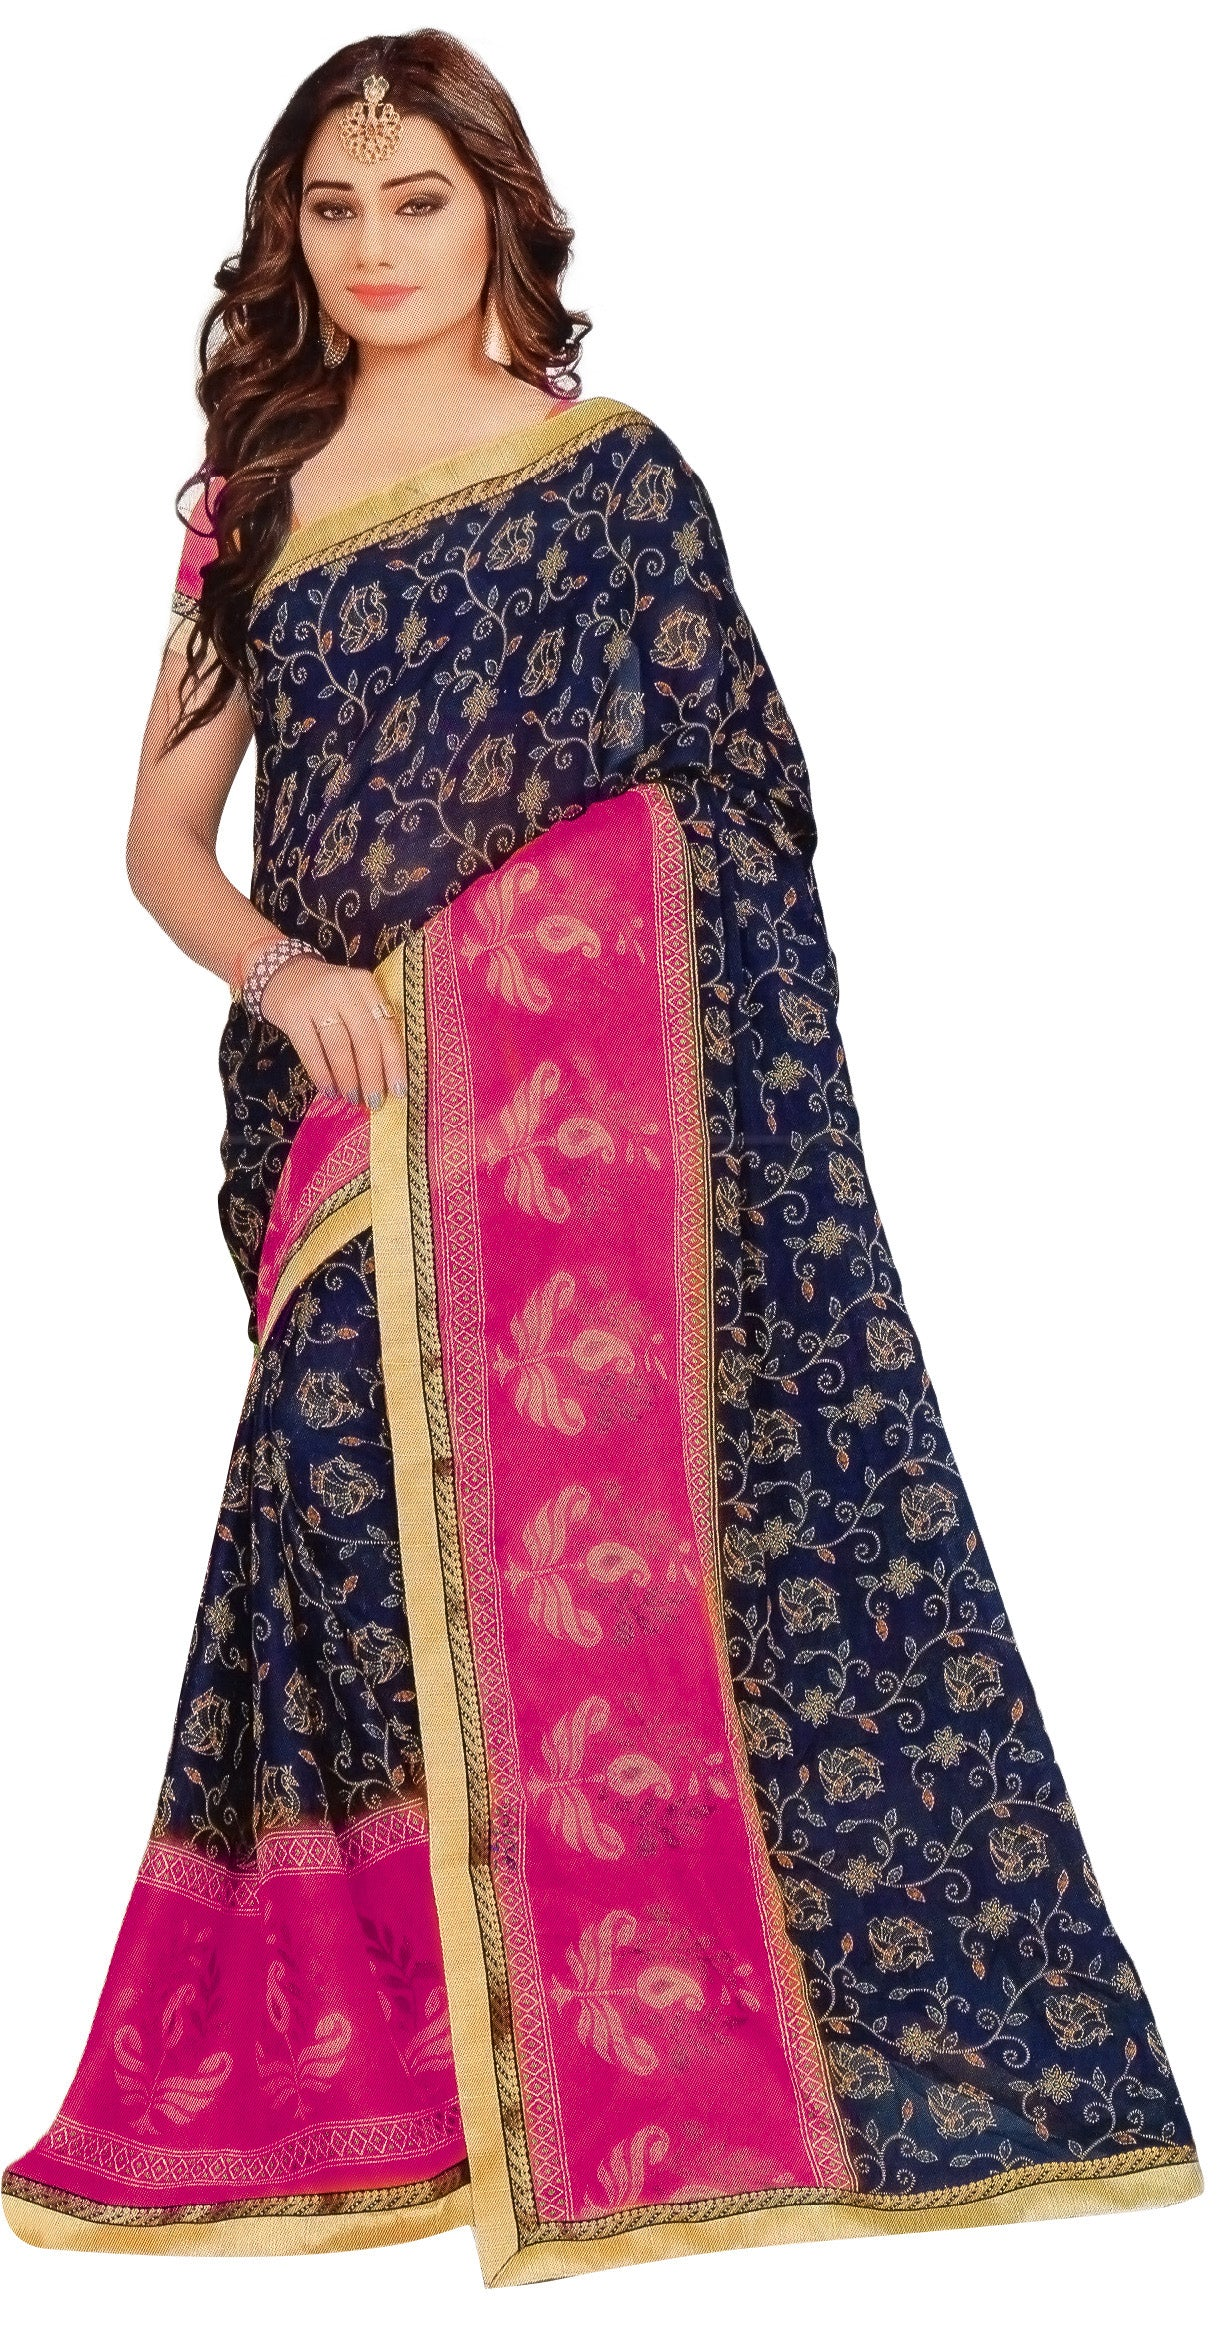 Jyothi-2 Printed Synthetic Saree With Blouse Piece Saree (Pink) By Indians Boutique